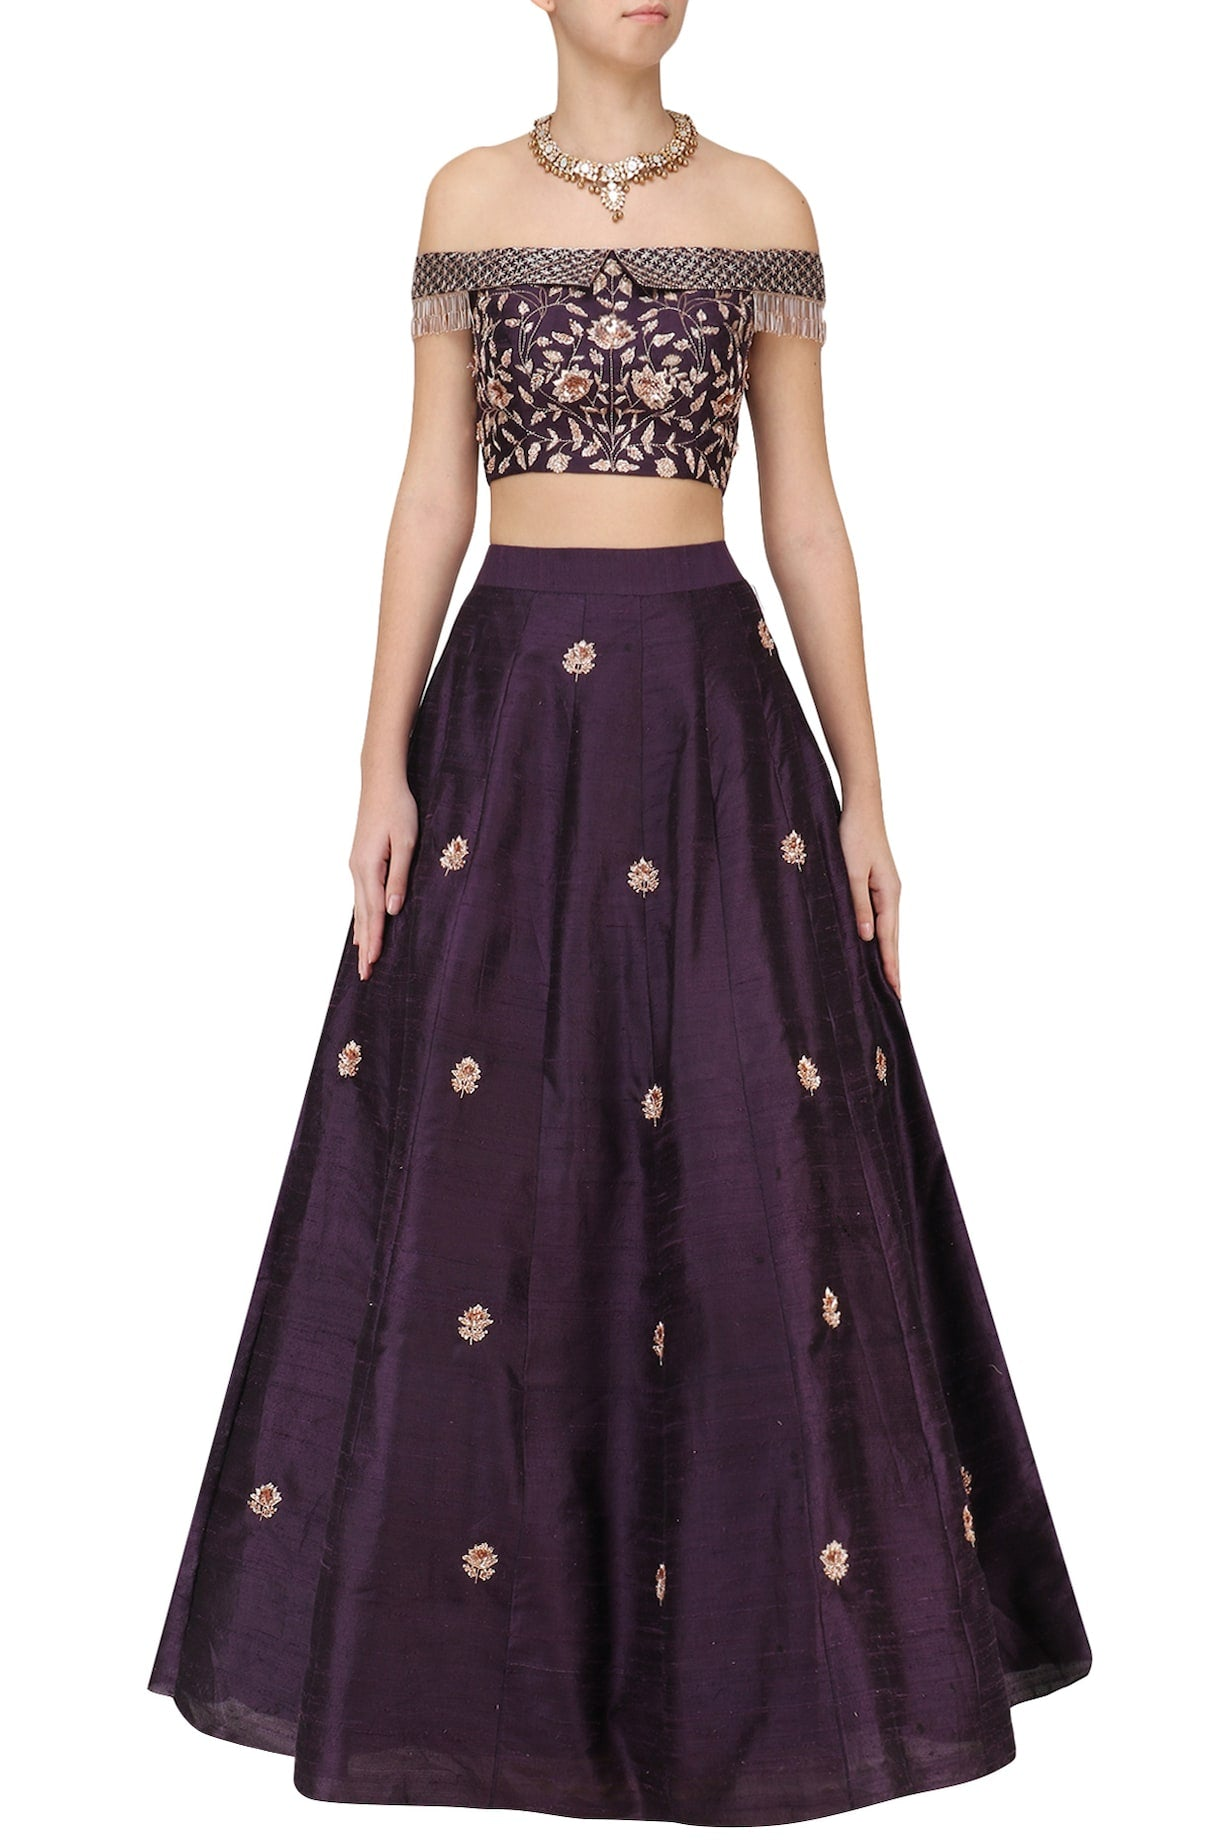 38fc88e09f PURPLE EMBROIDERED OFF SHOULDER CROP TOP AND SKIRT – Almara®